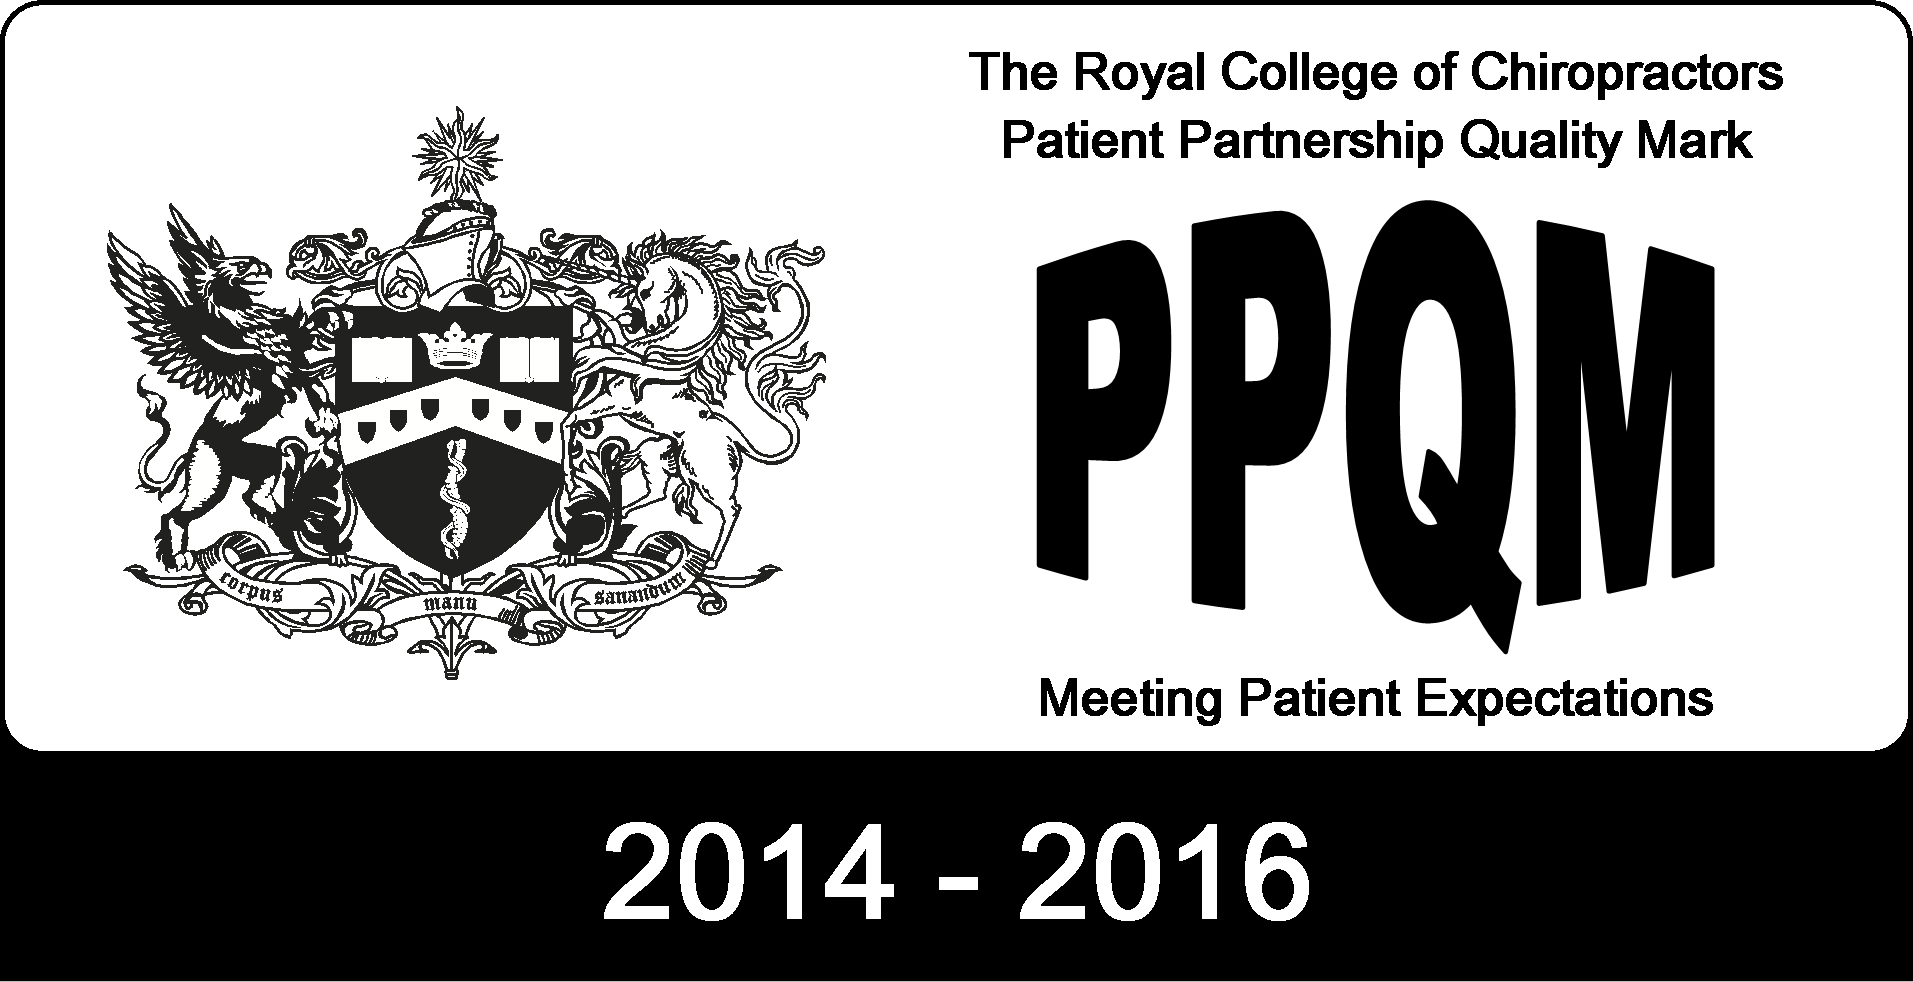 The college of Chiropractors Patient Partnership Quality Mark (PPQM)